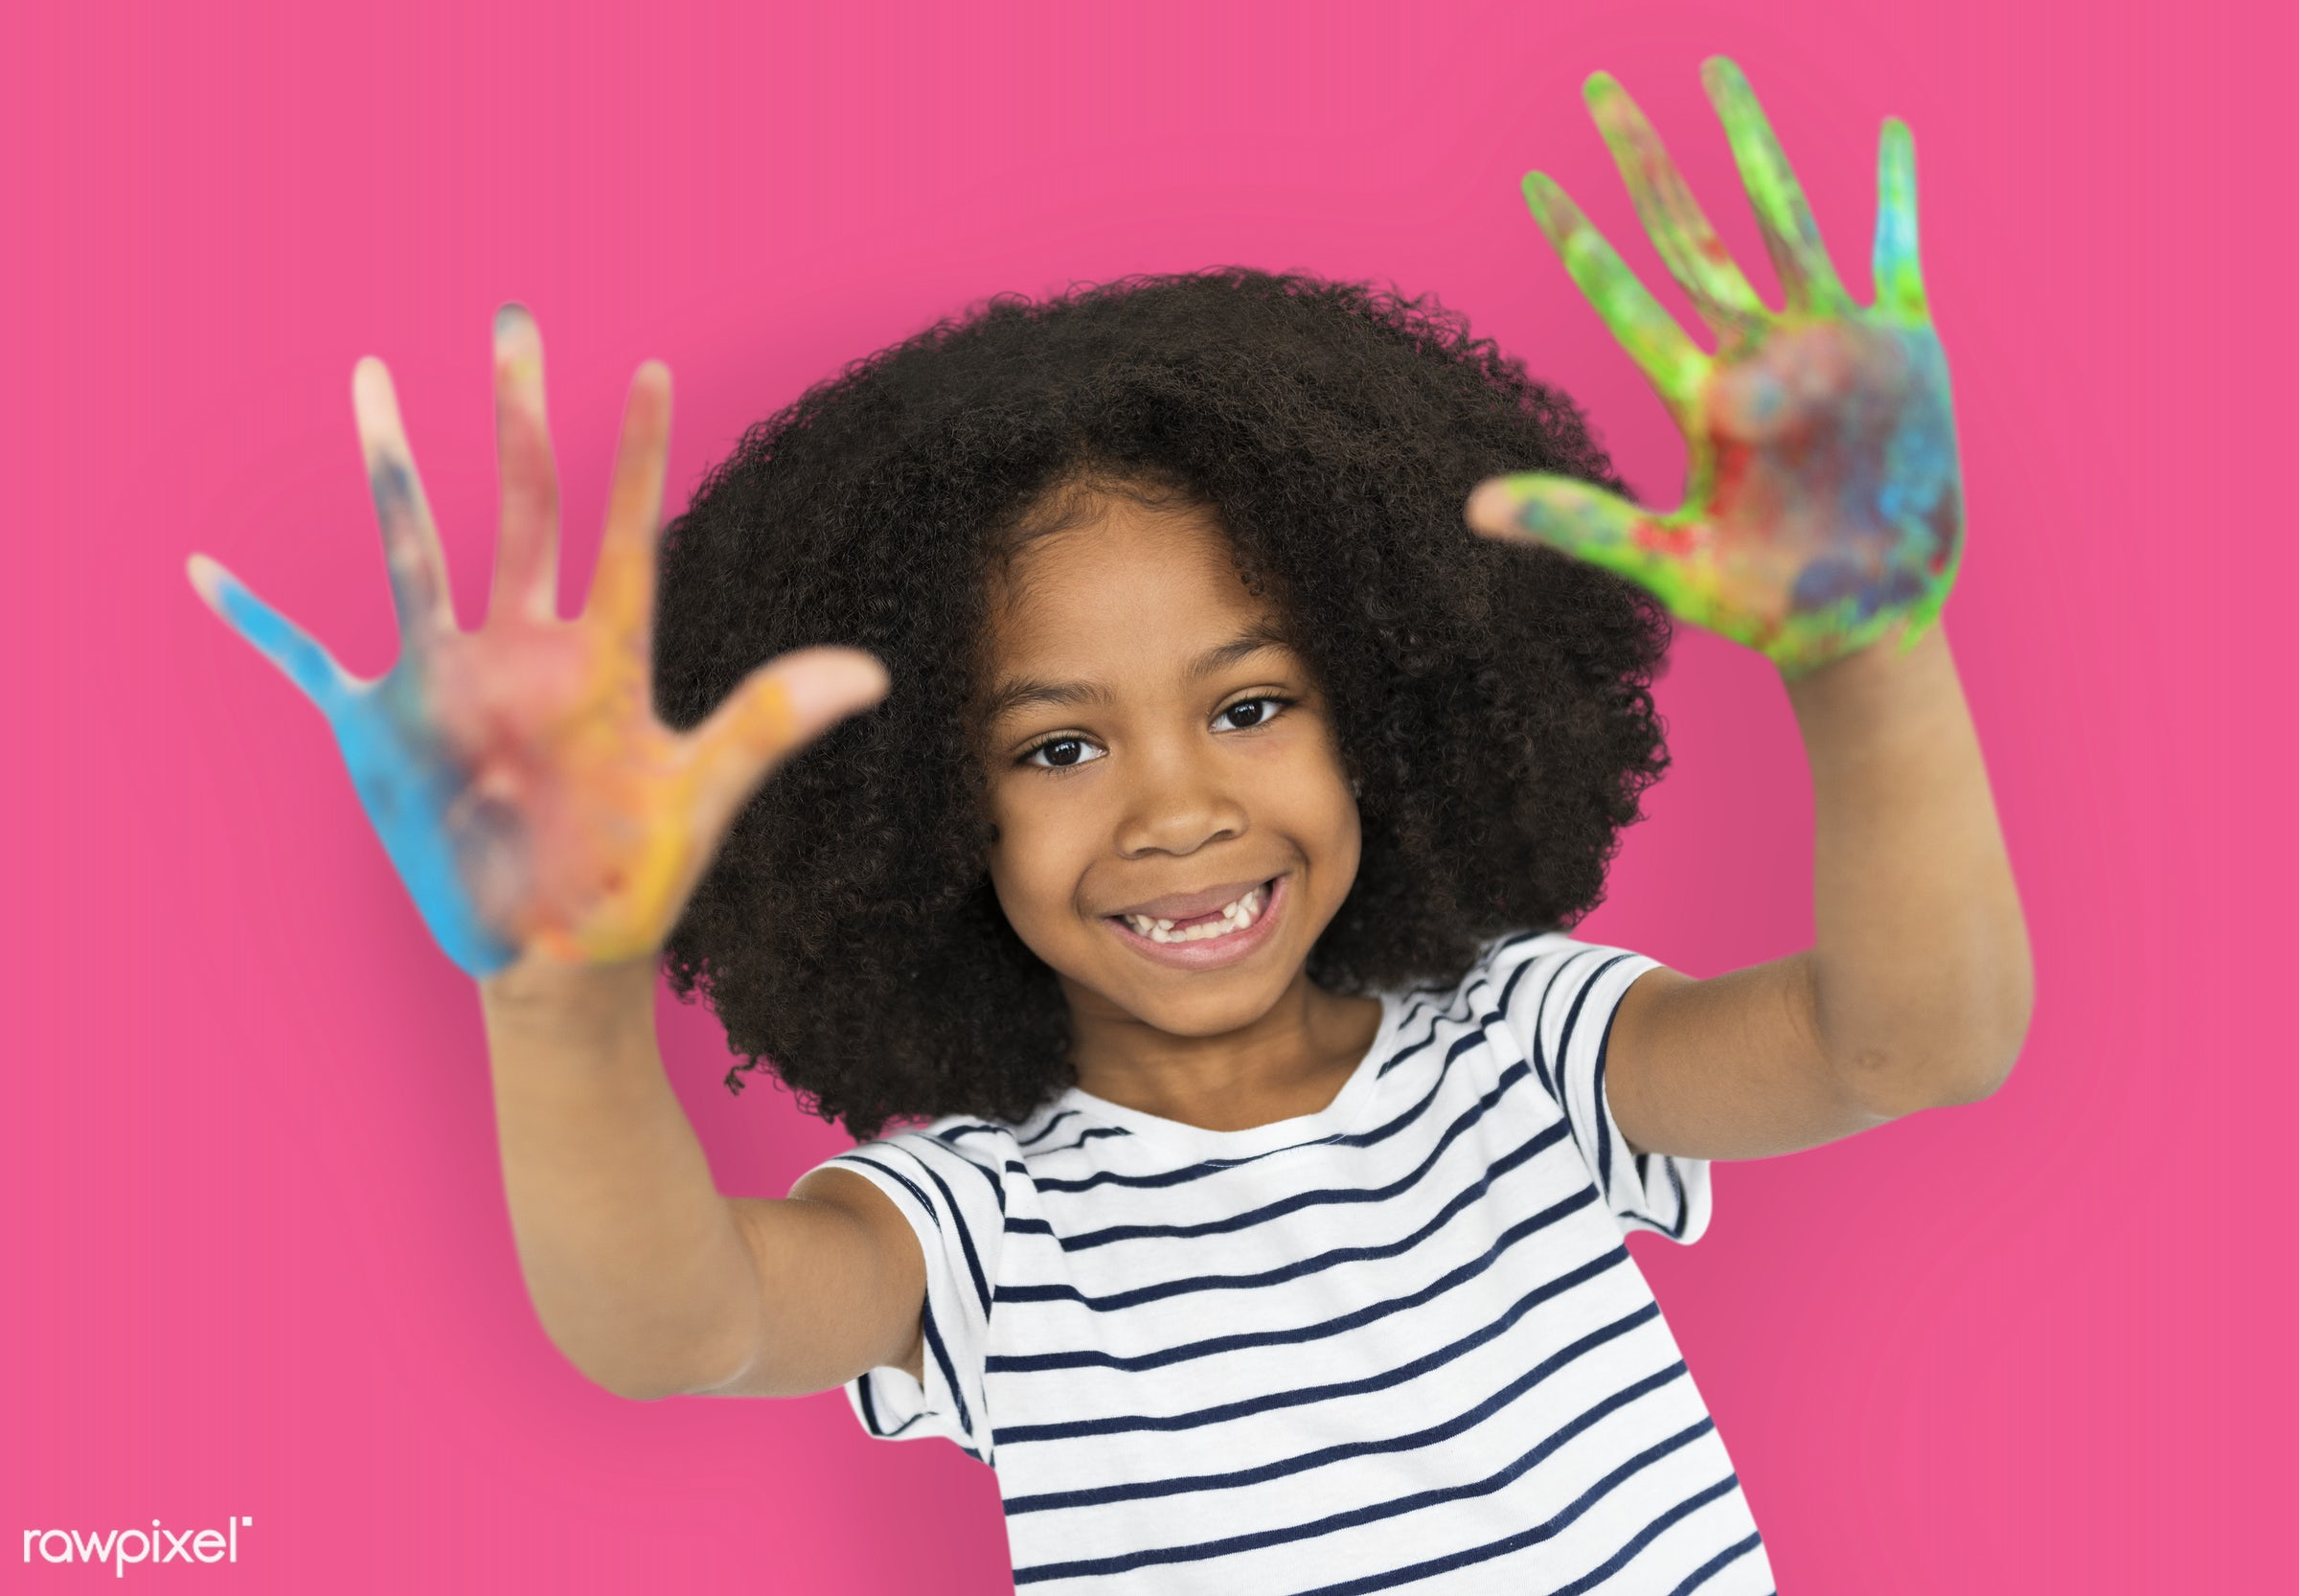 studio, expression, person, little, cute, people, painted hands, drawing, draw, child, girl, happy, casual, smile, cheerful...